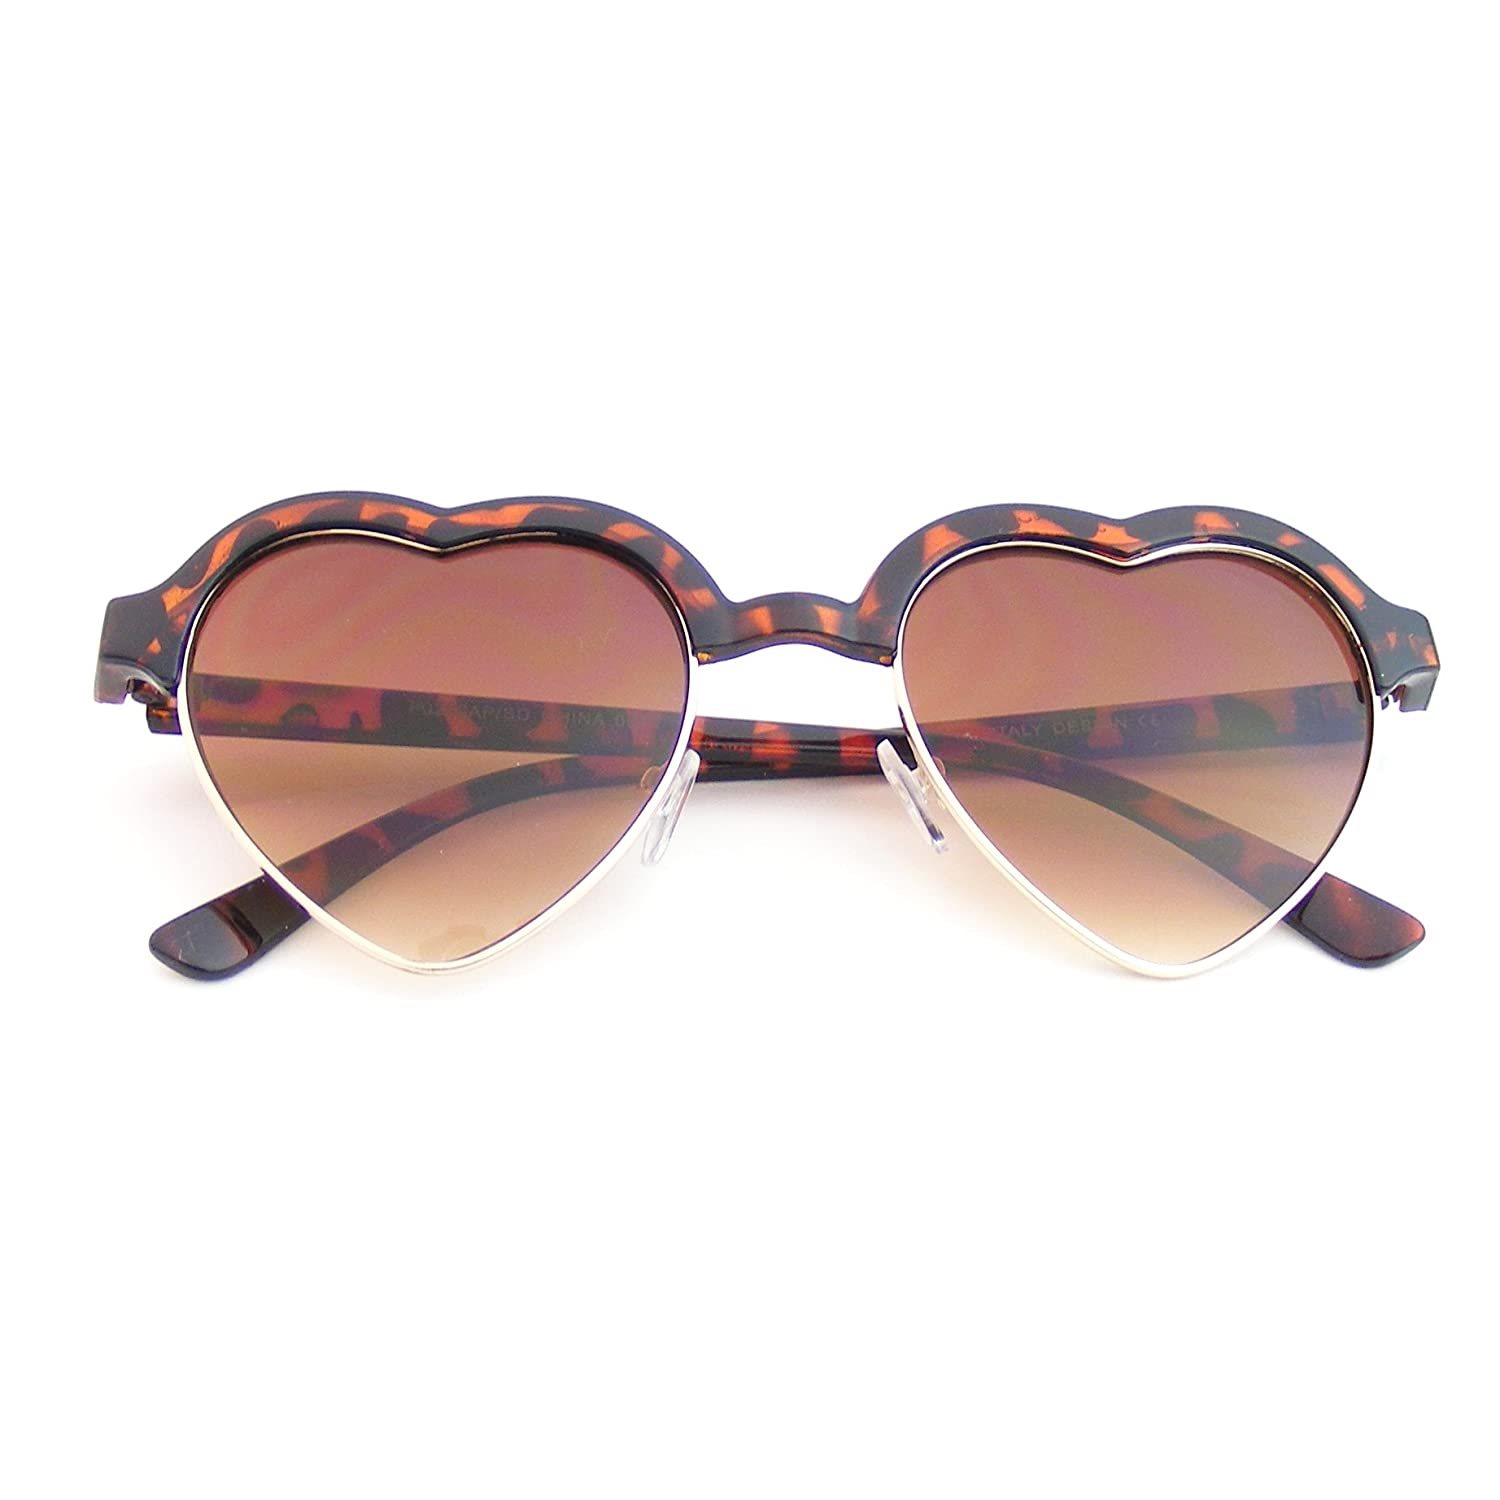 d462b58d51 HIGH QUALITY FRAME  Half Frame Heart Sunglasses are manufactured with high  quality plastic frames and polycarbonate lenses. Both durable and strong